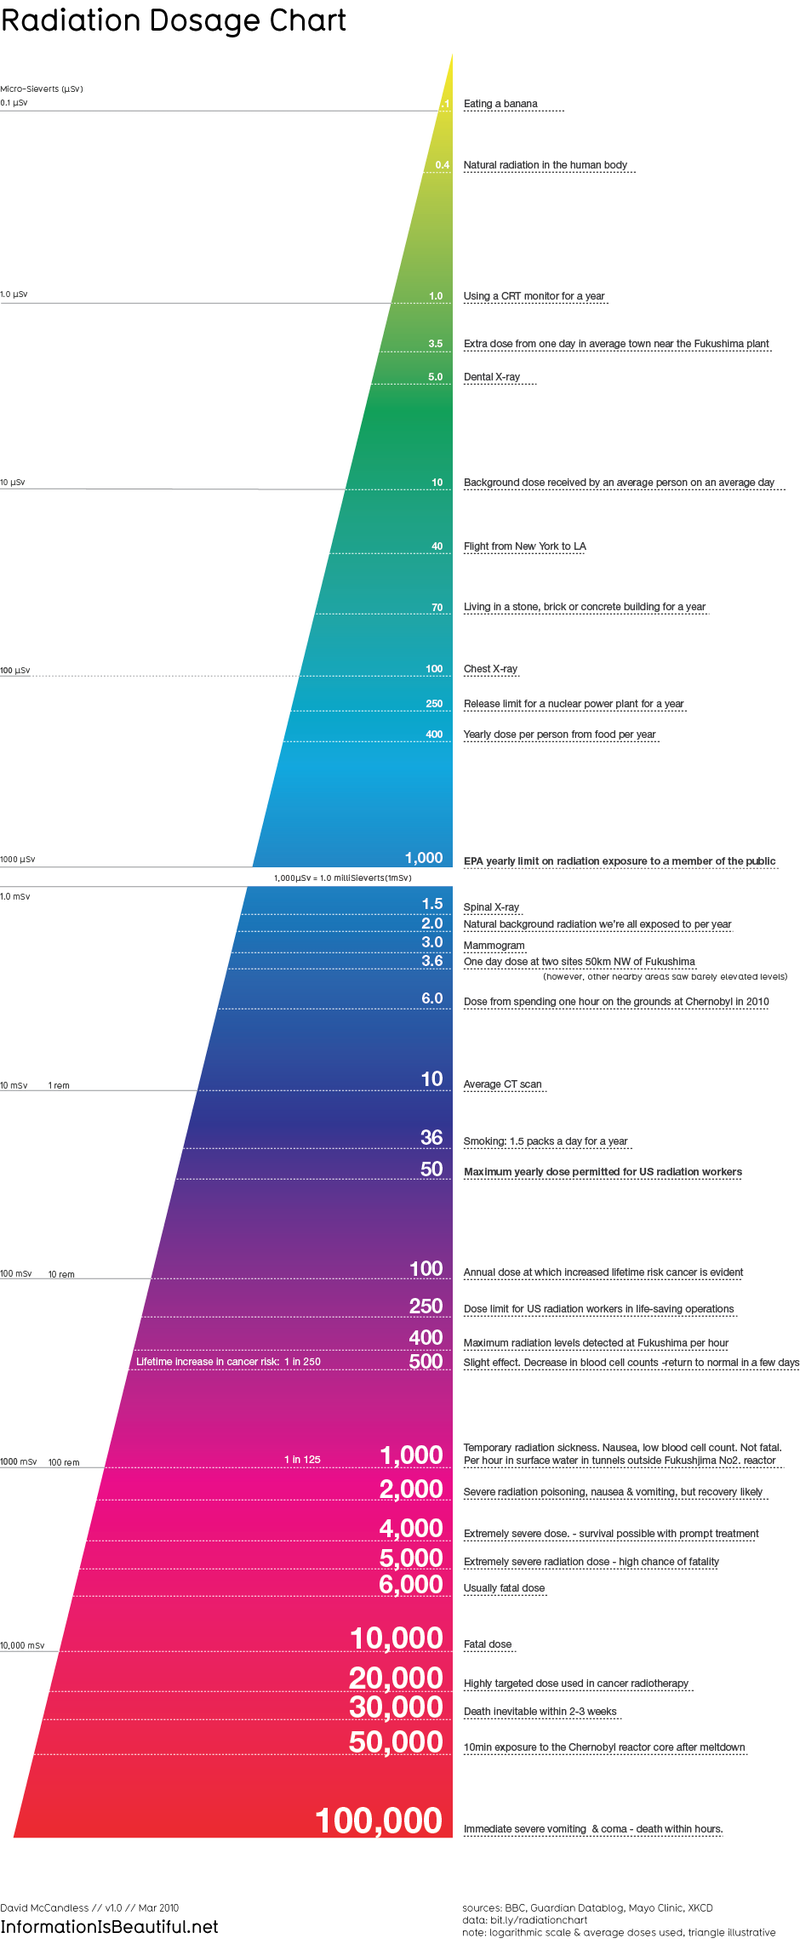 The Most Colorful, Readable Radiation Dosage Chart Yet